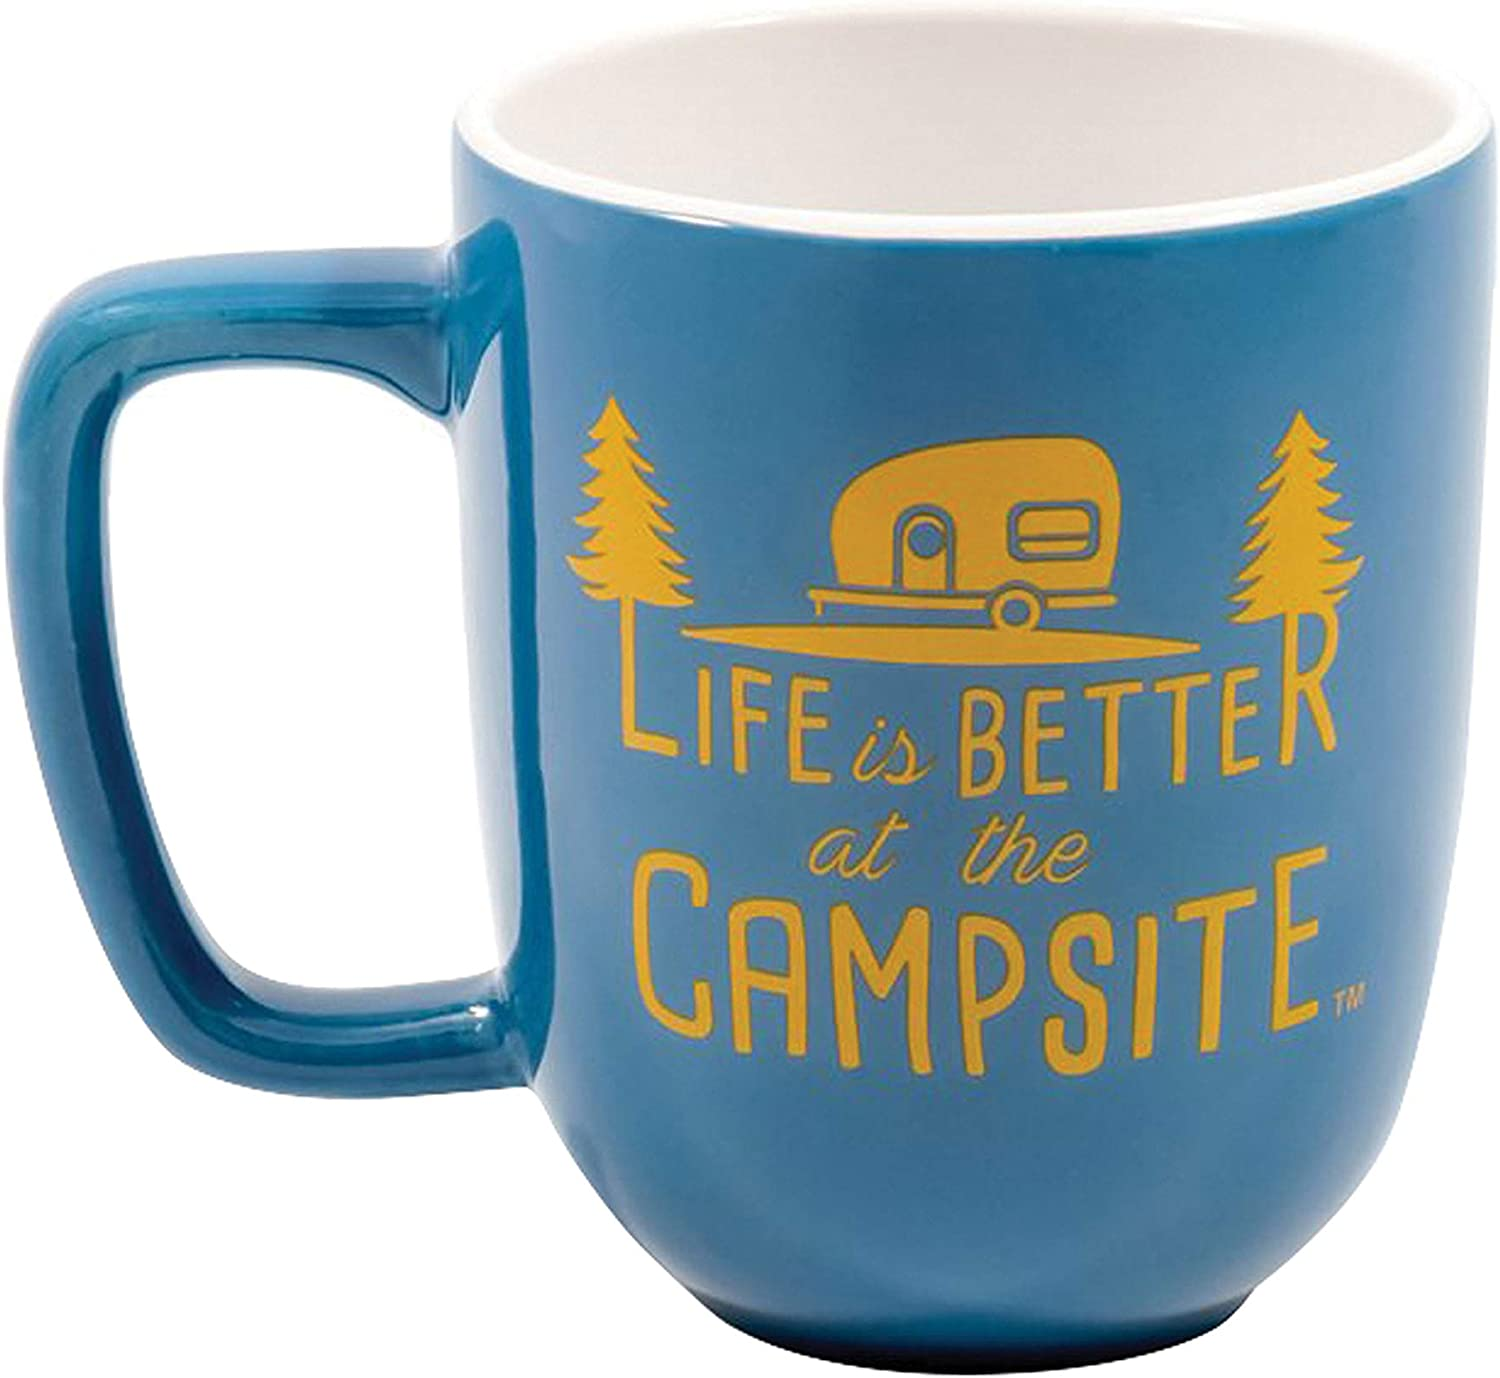 """Camco """"Life is Better at The Campsite"""" Ceramic Coffee Mug - Great for Use While Camping and Outdoors. Microwave and Dishwasher Safe (Blue/Yellow, 12 oz.)"""